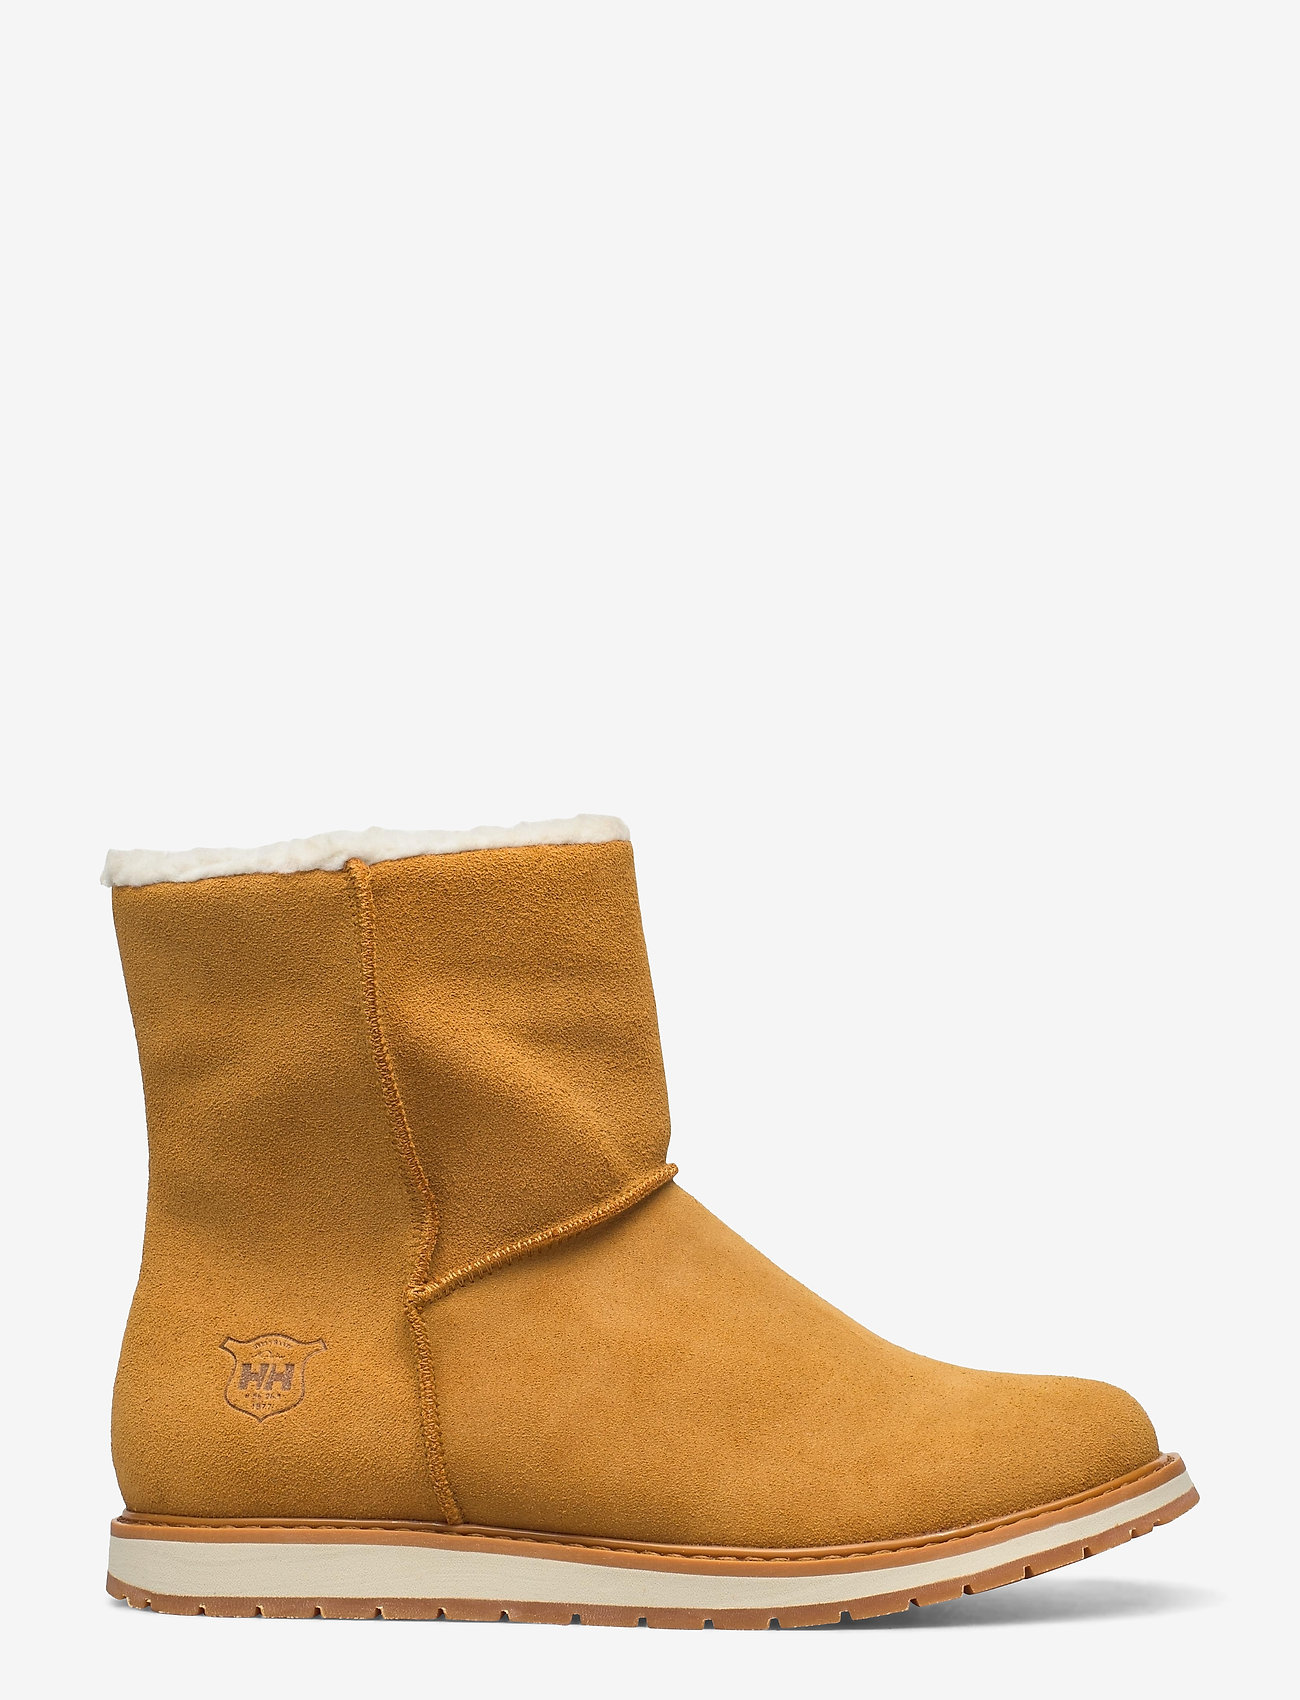 Helly Hansen - W ANNABELLE BOOT - flat ankle boots - 726 new wheat / natura / light - 1